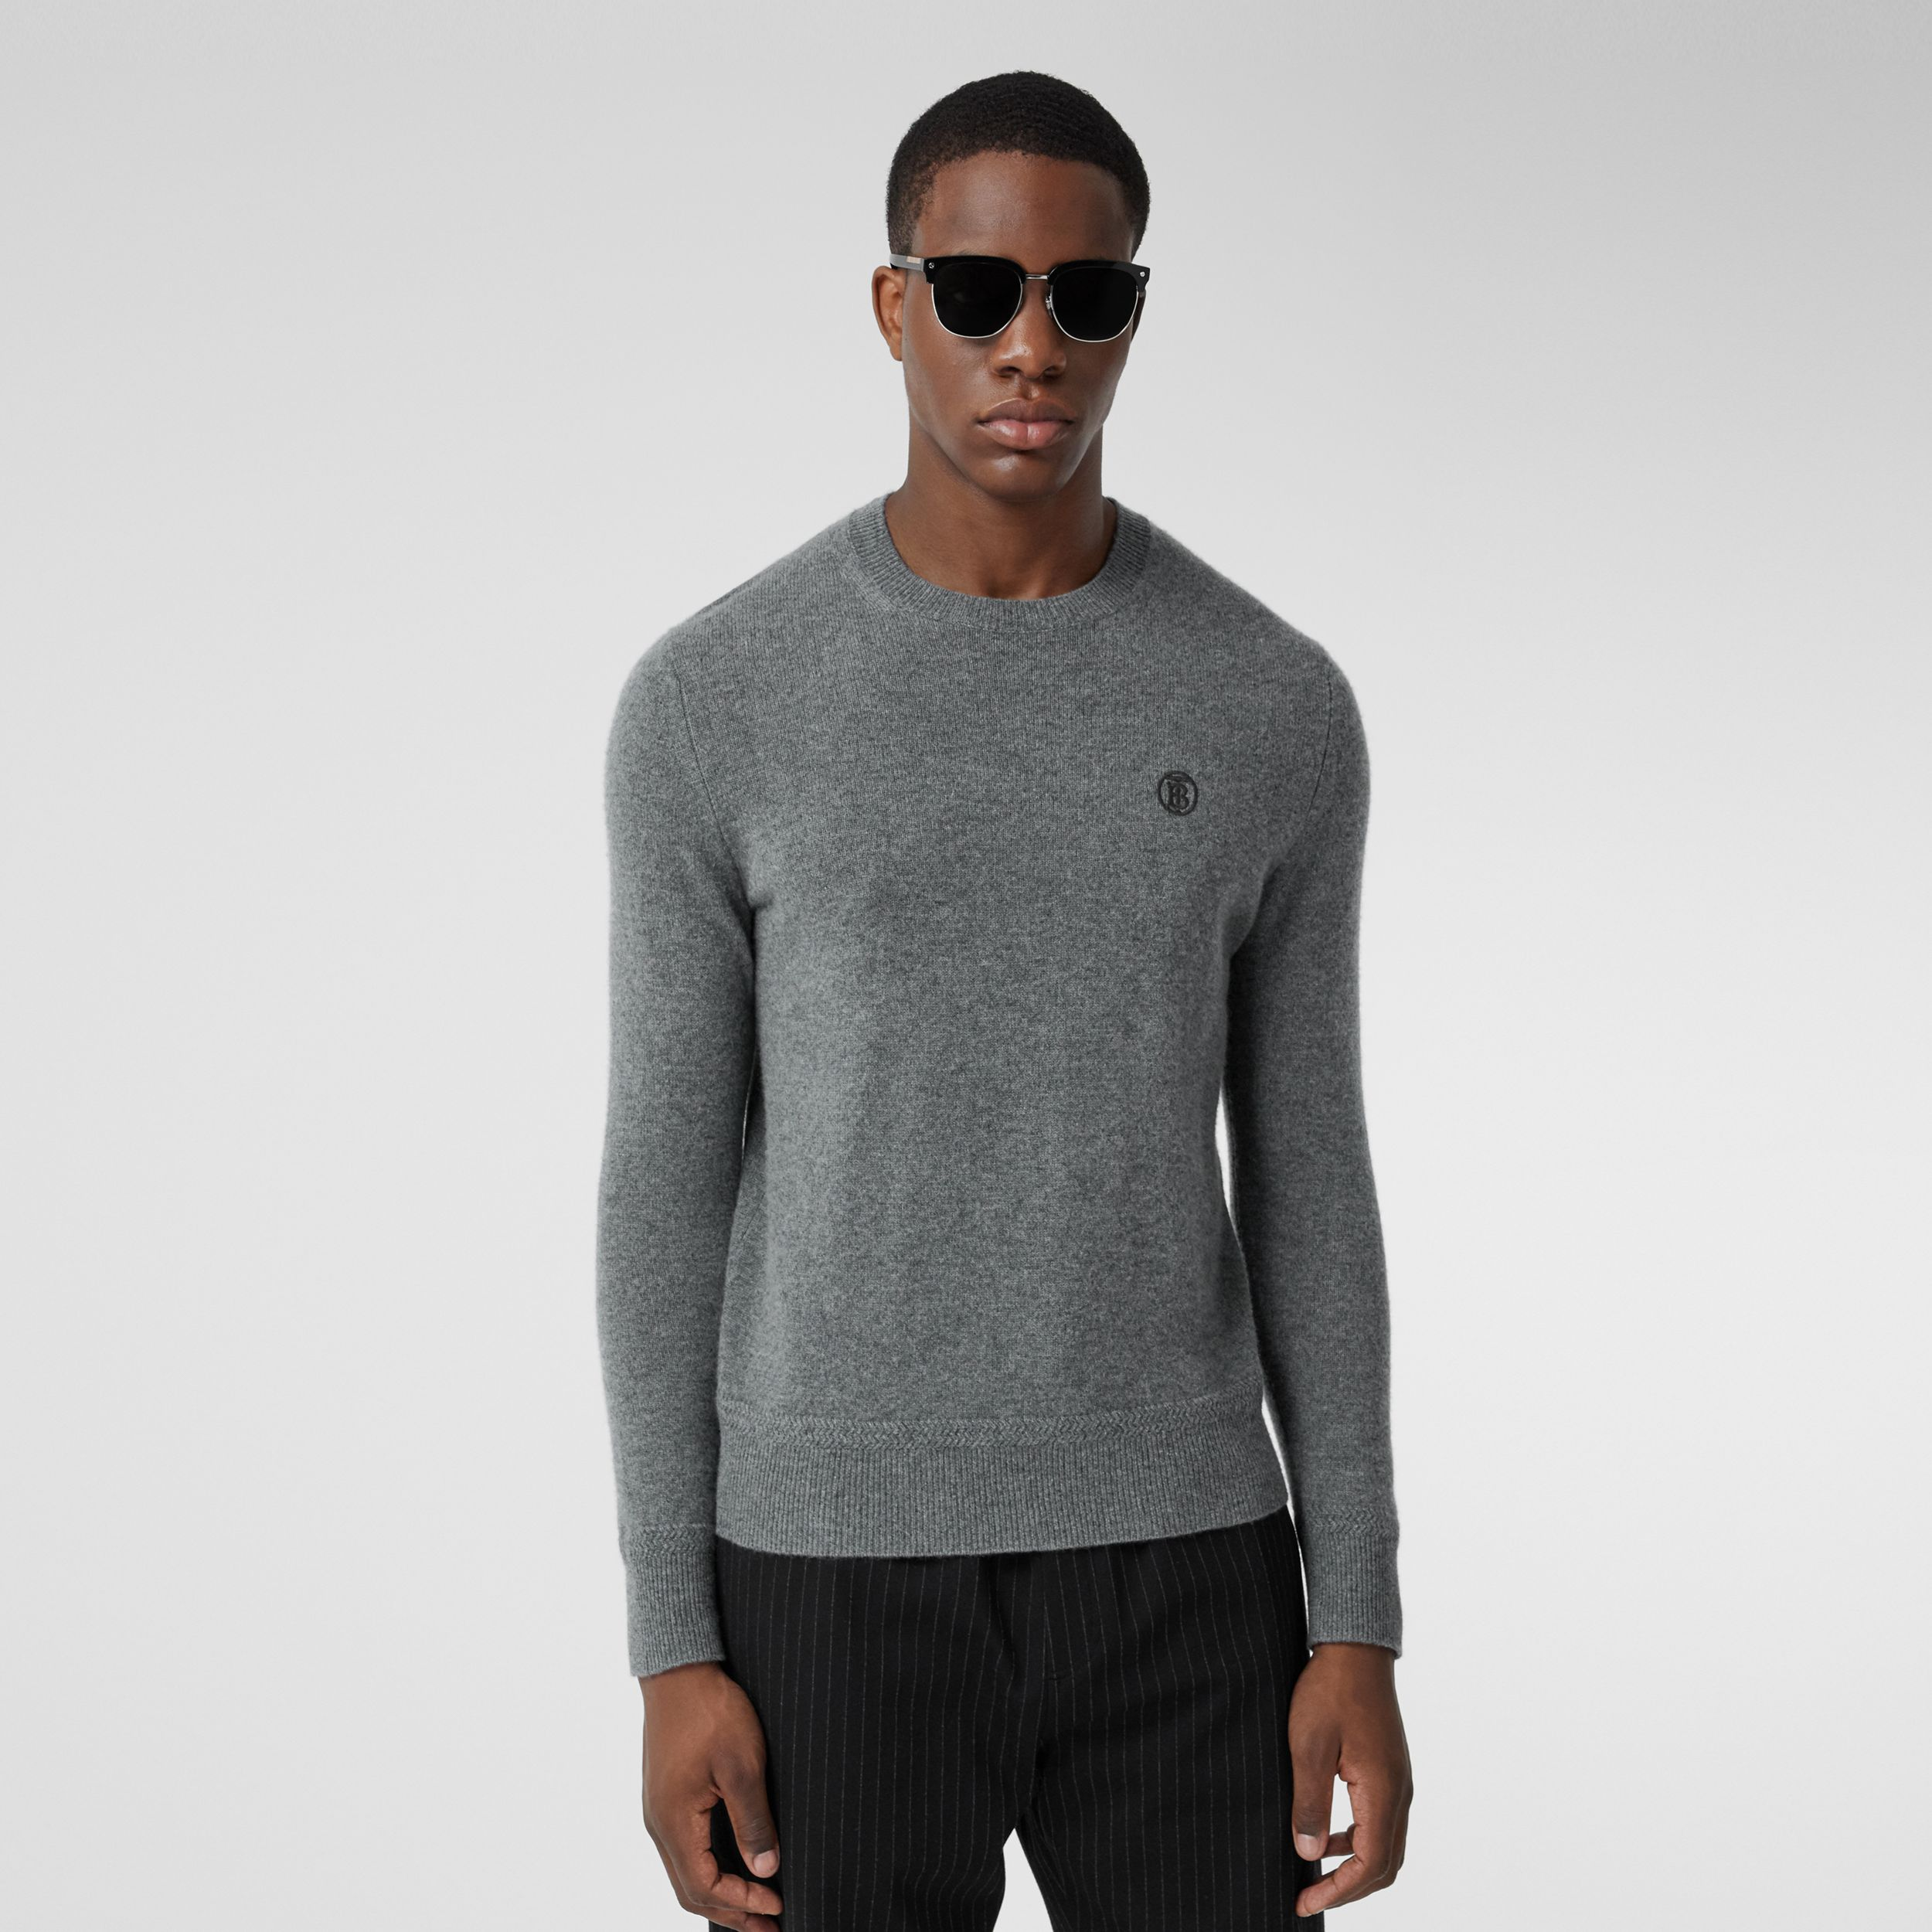 Monogram Motif Cashmere Sweater in Mid Grey Melange - Men | Burberry - 1